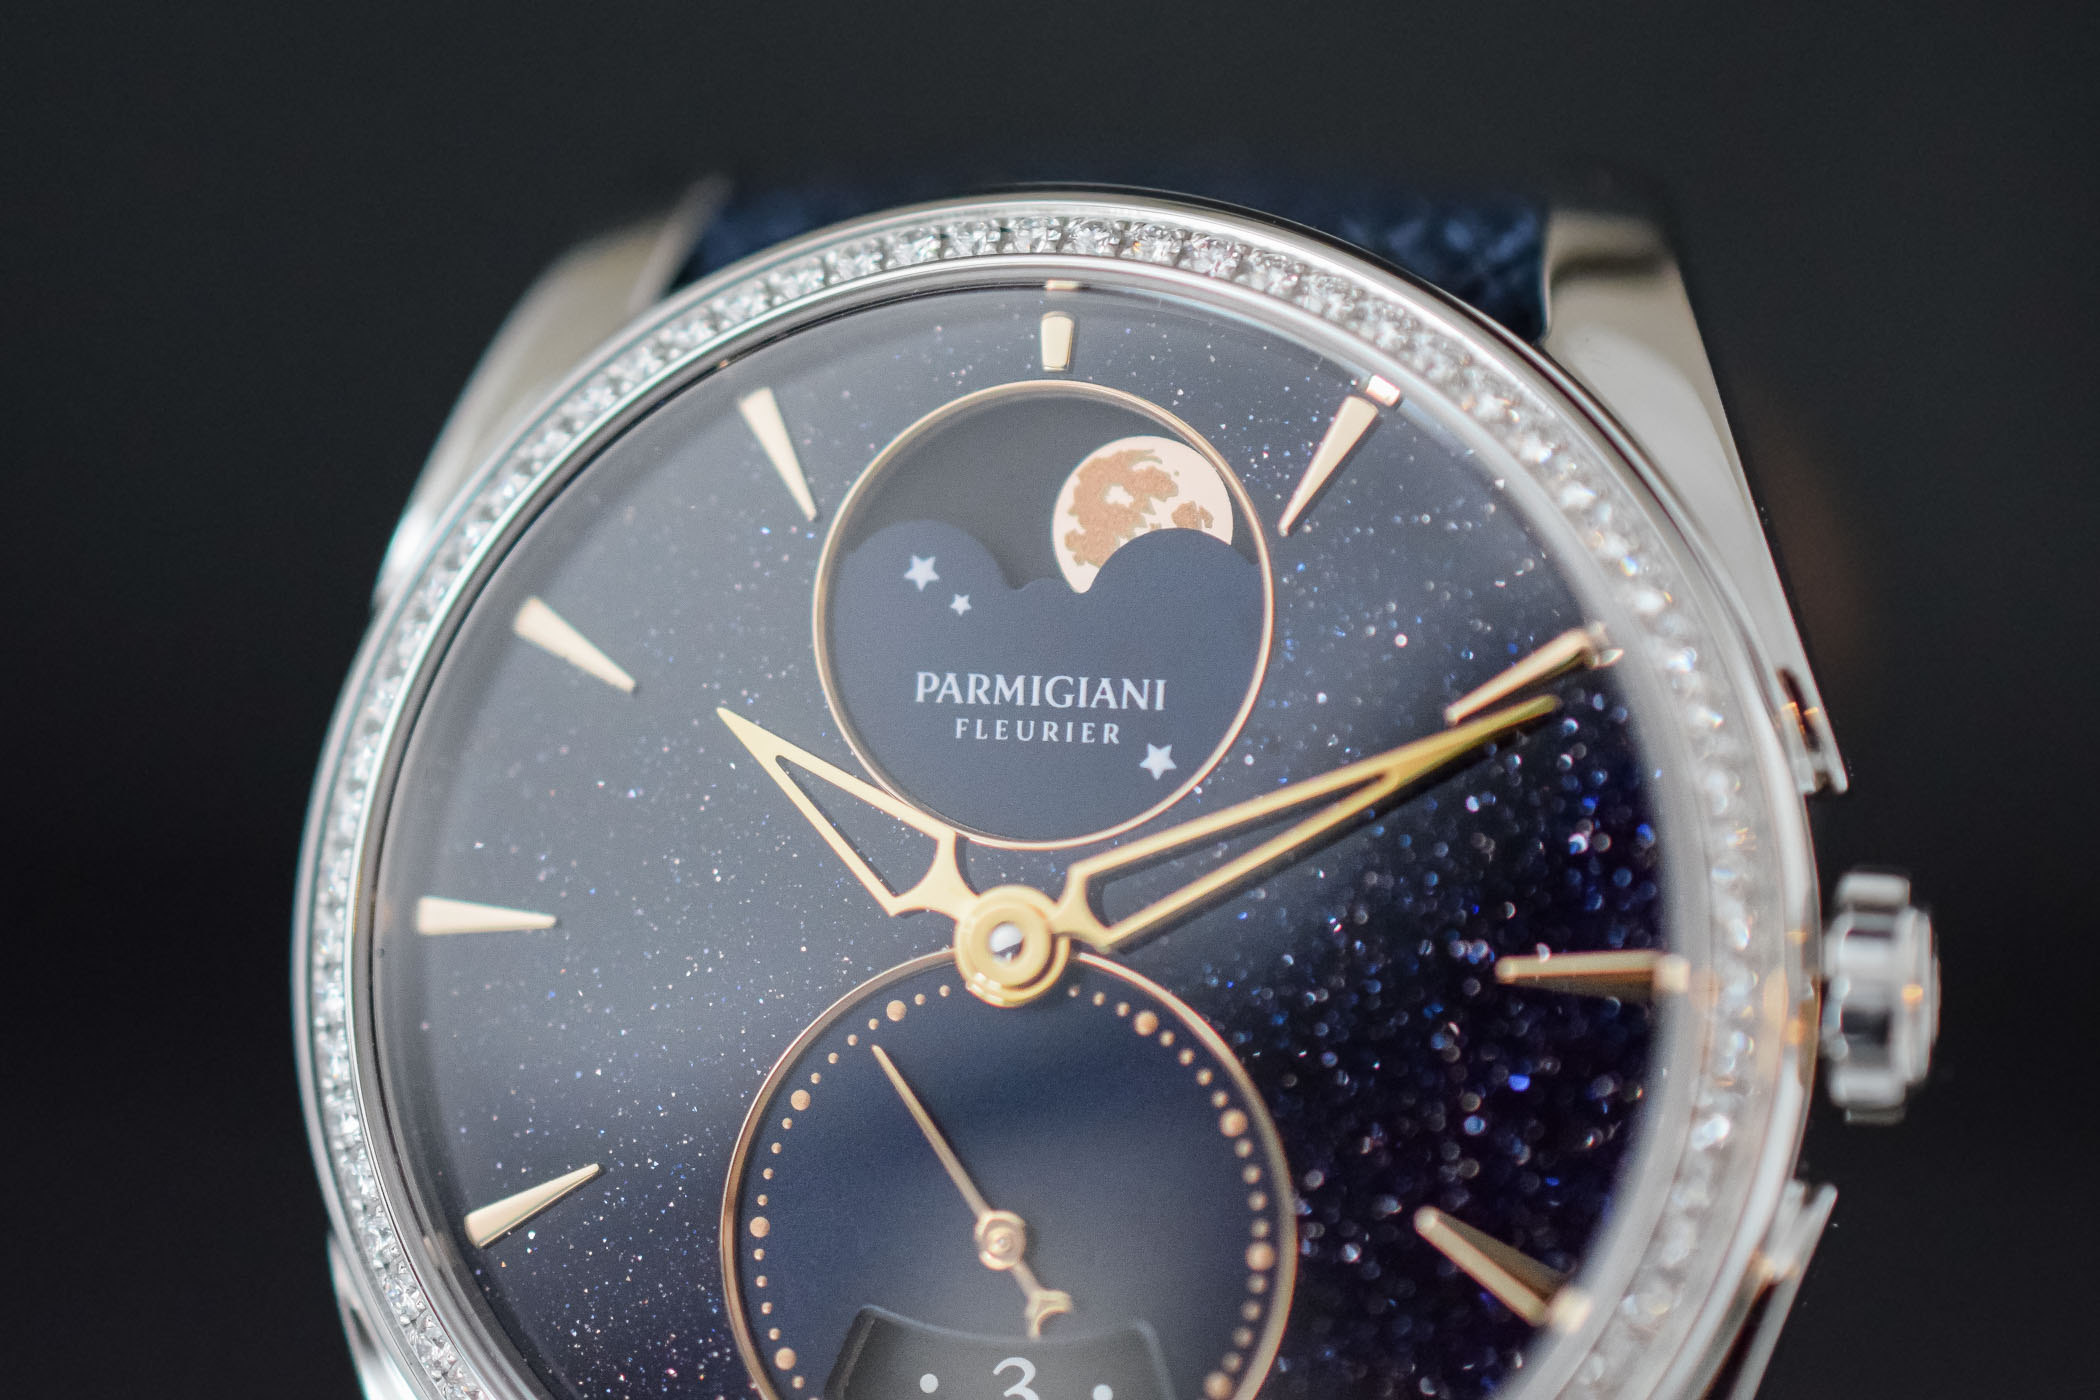 Parmigiani Fleurier Tonda Metropolitaine Selene Galaxy - Ladies watch - 6